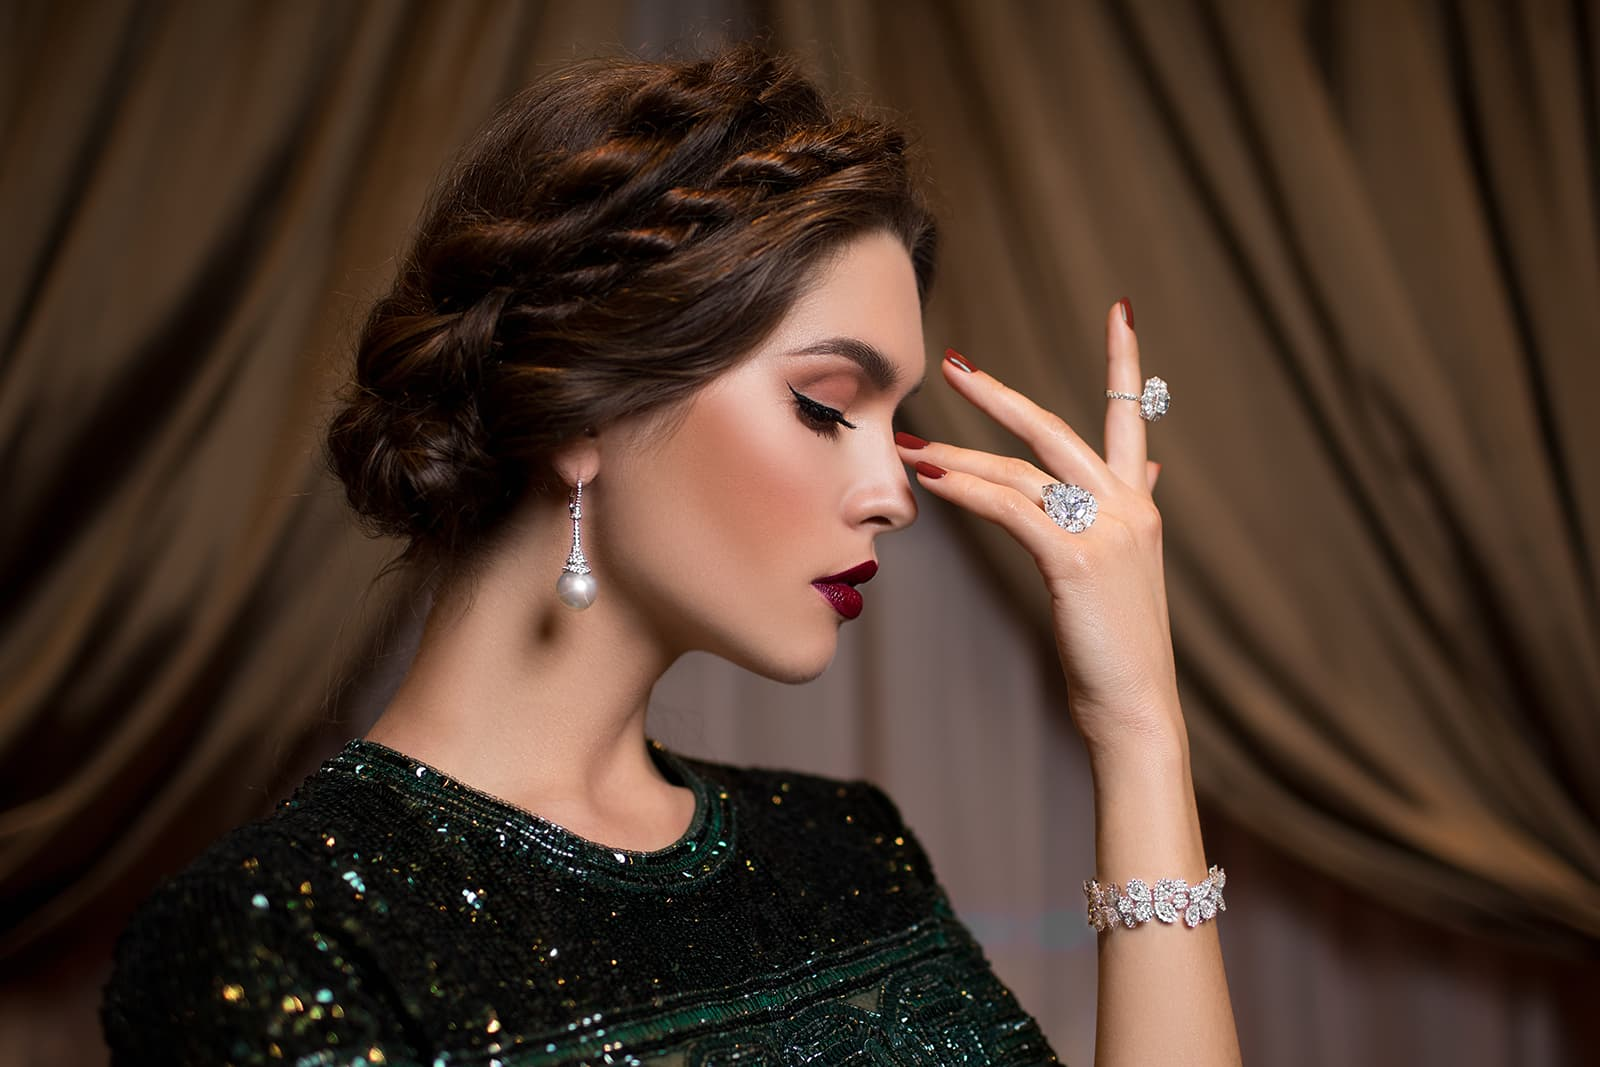 A suite of MaximiliaN London jewellery including a drop earring with pearl, cocktail rings and bracelet, all with diamonds